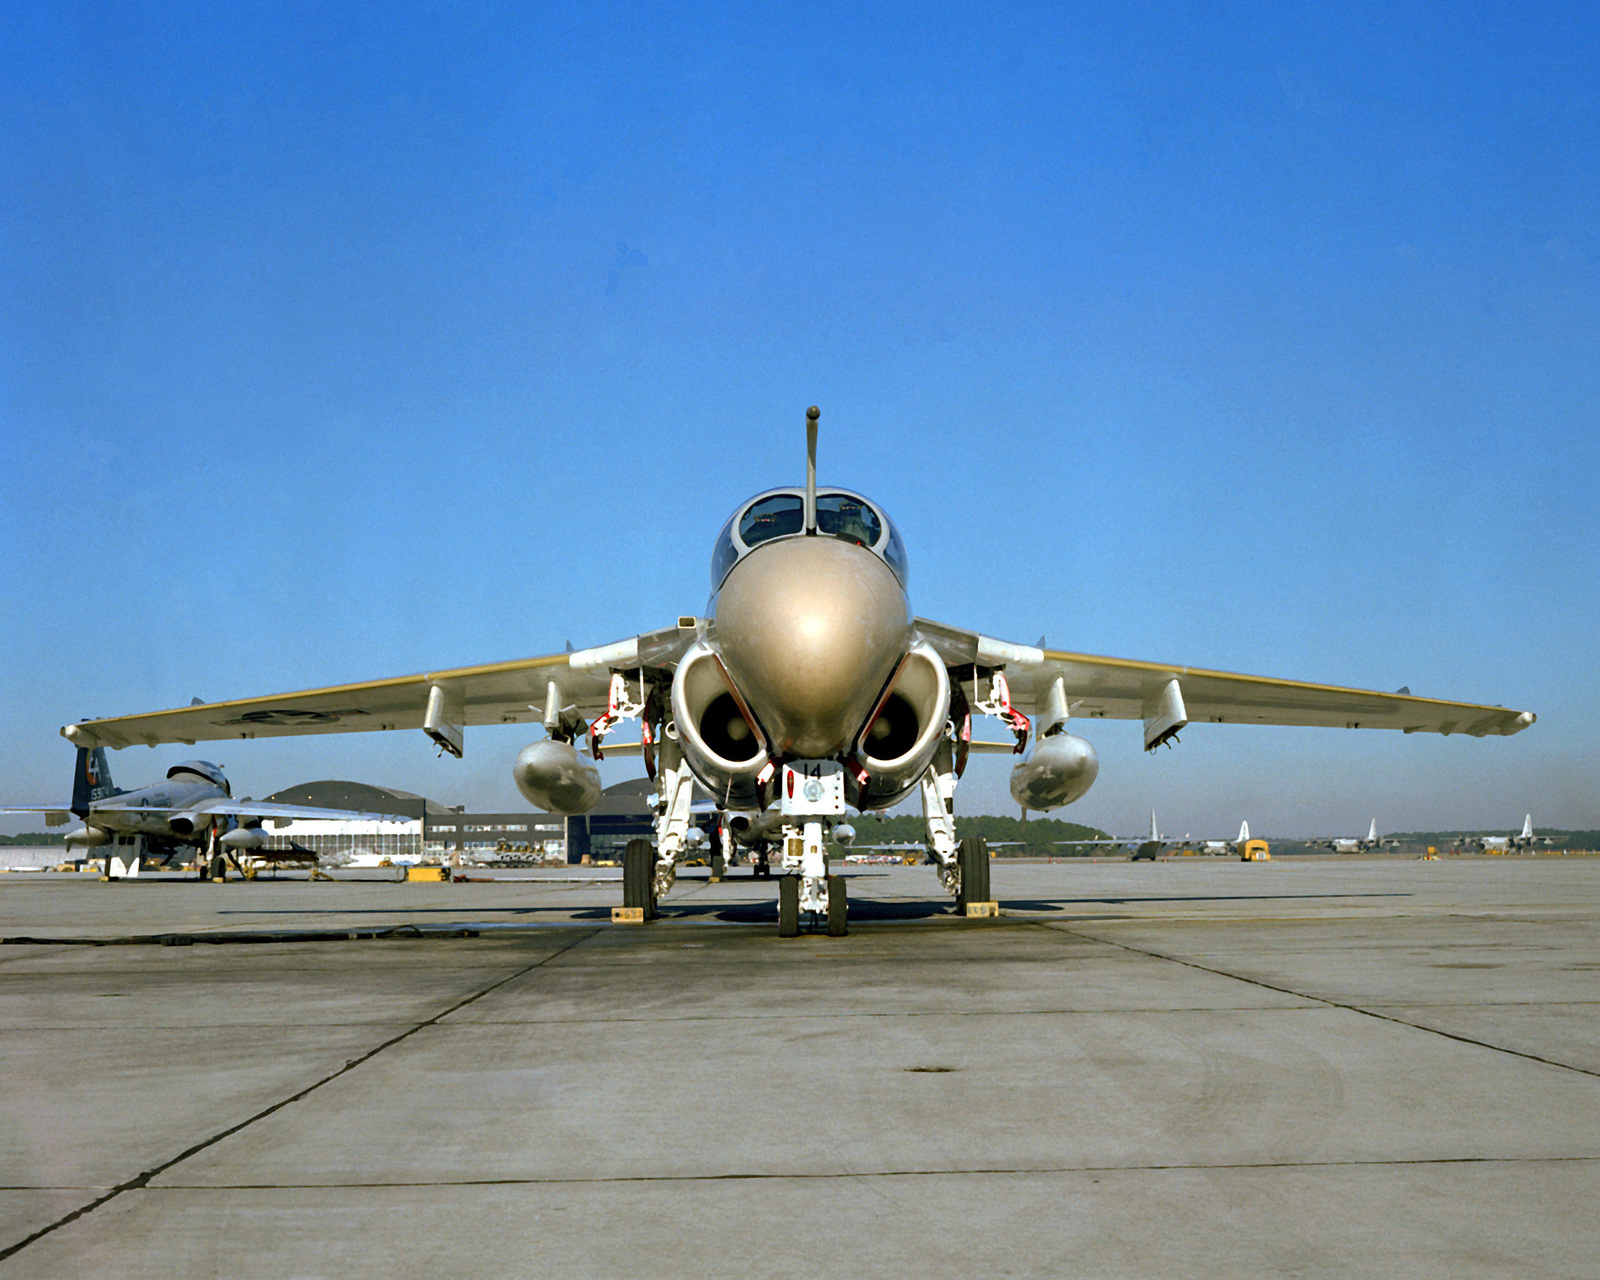 A front view of a Marine A-6E Intruder aircraft sitting on the flight line. The Intruder is from Marine All-Weather Medium Attack Squadron 332 (VMAWF-332)